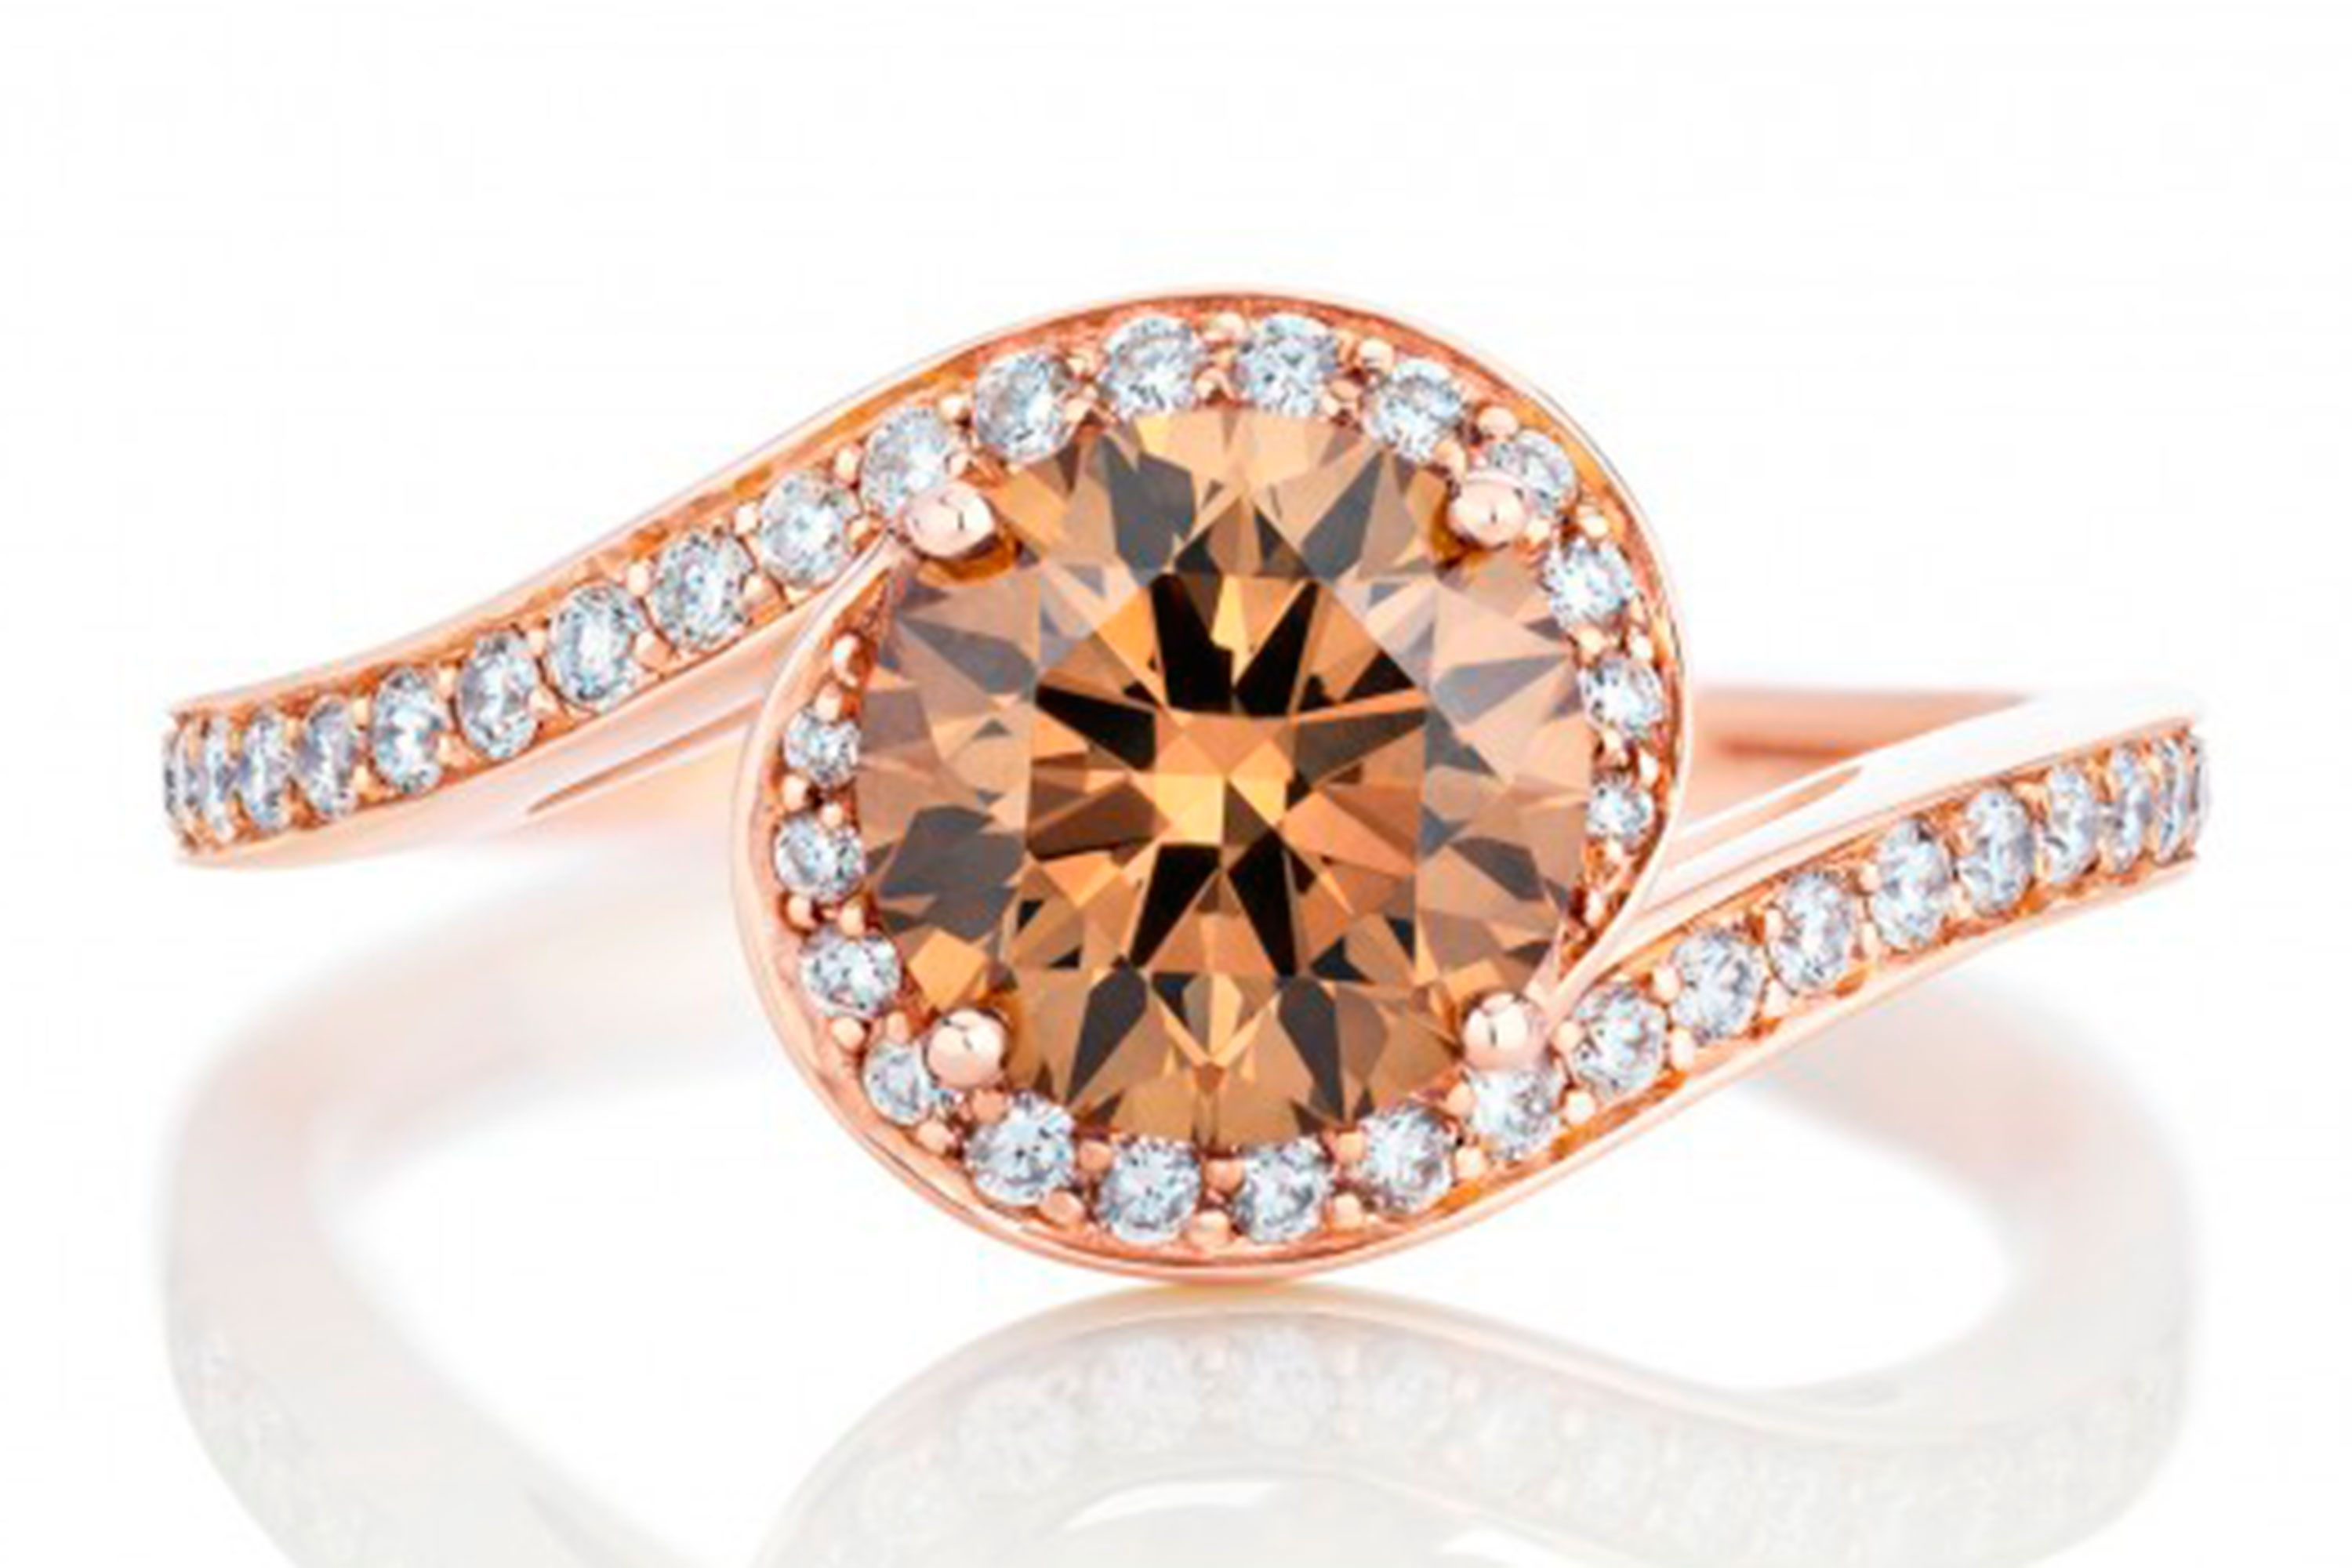 heirloom rings engagement ring istock blog orange large an cubic resetting zirconia